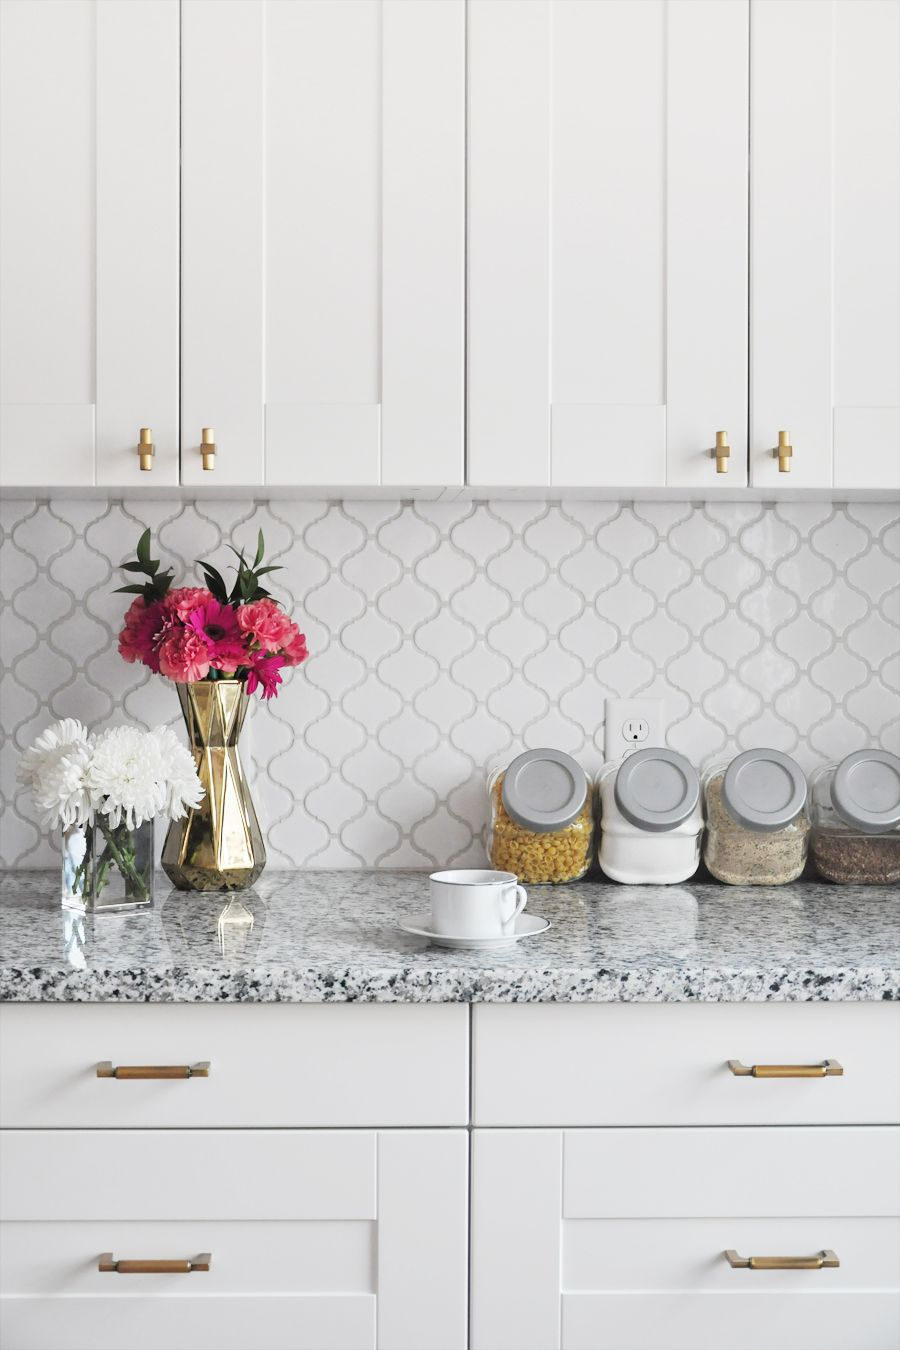 How to tile a kitchen backsplash diy tutorial